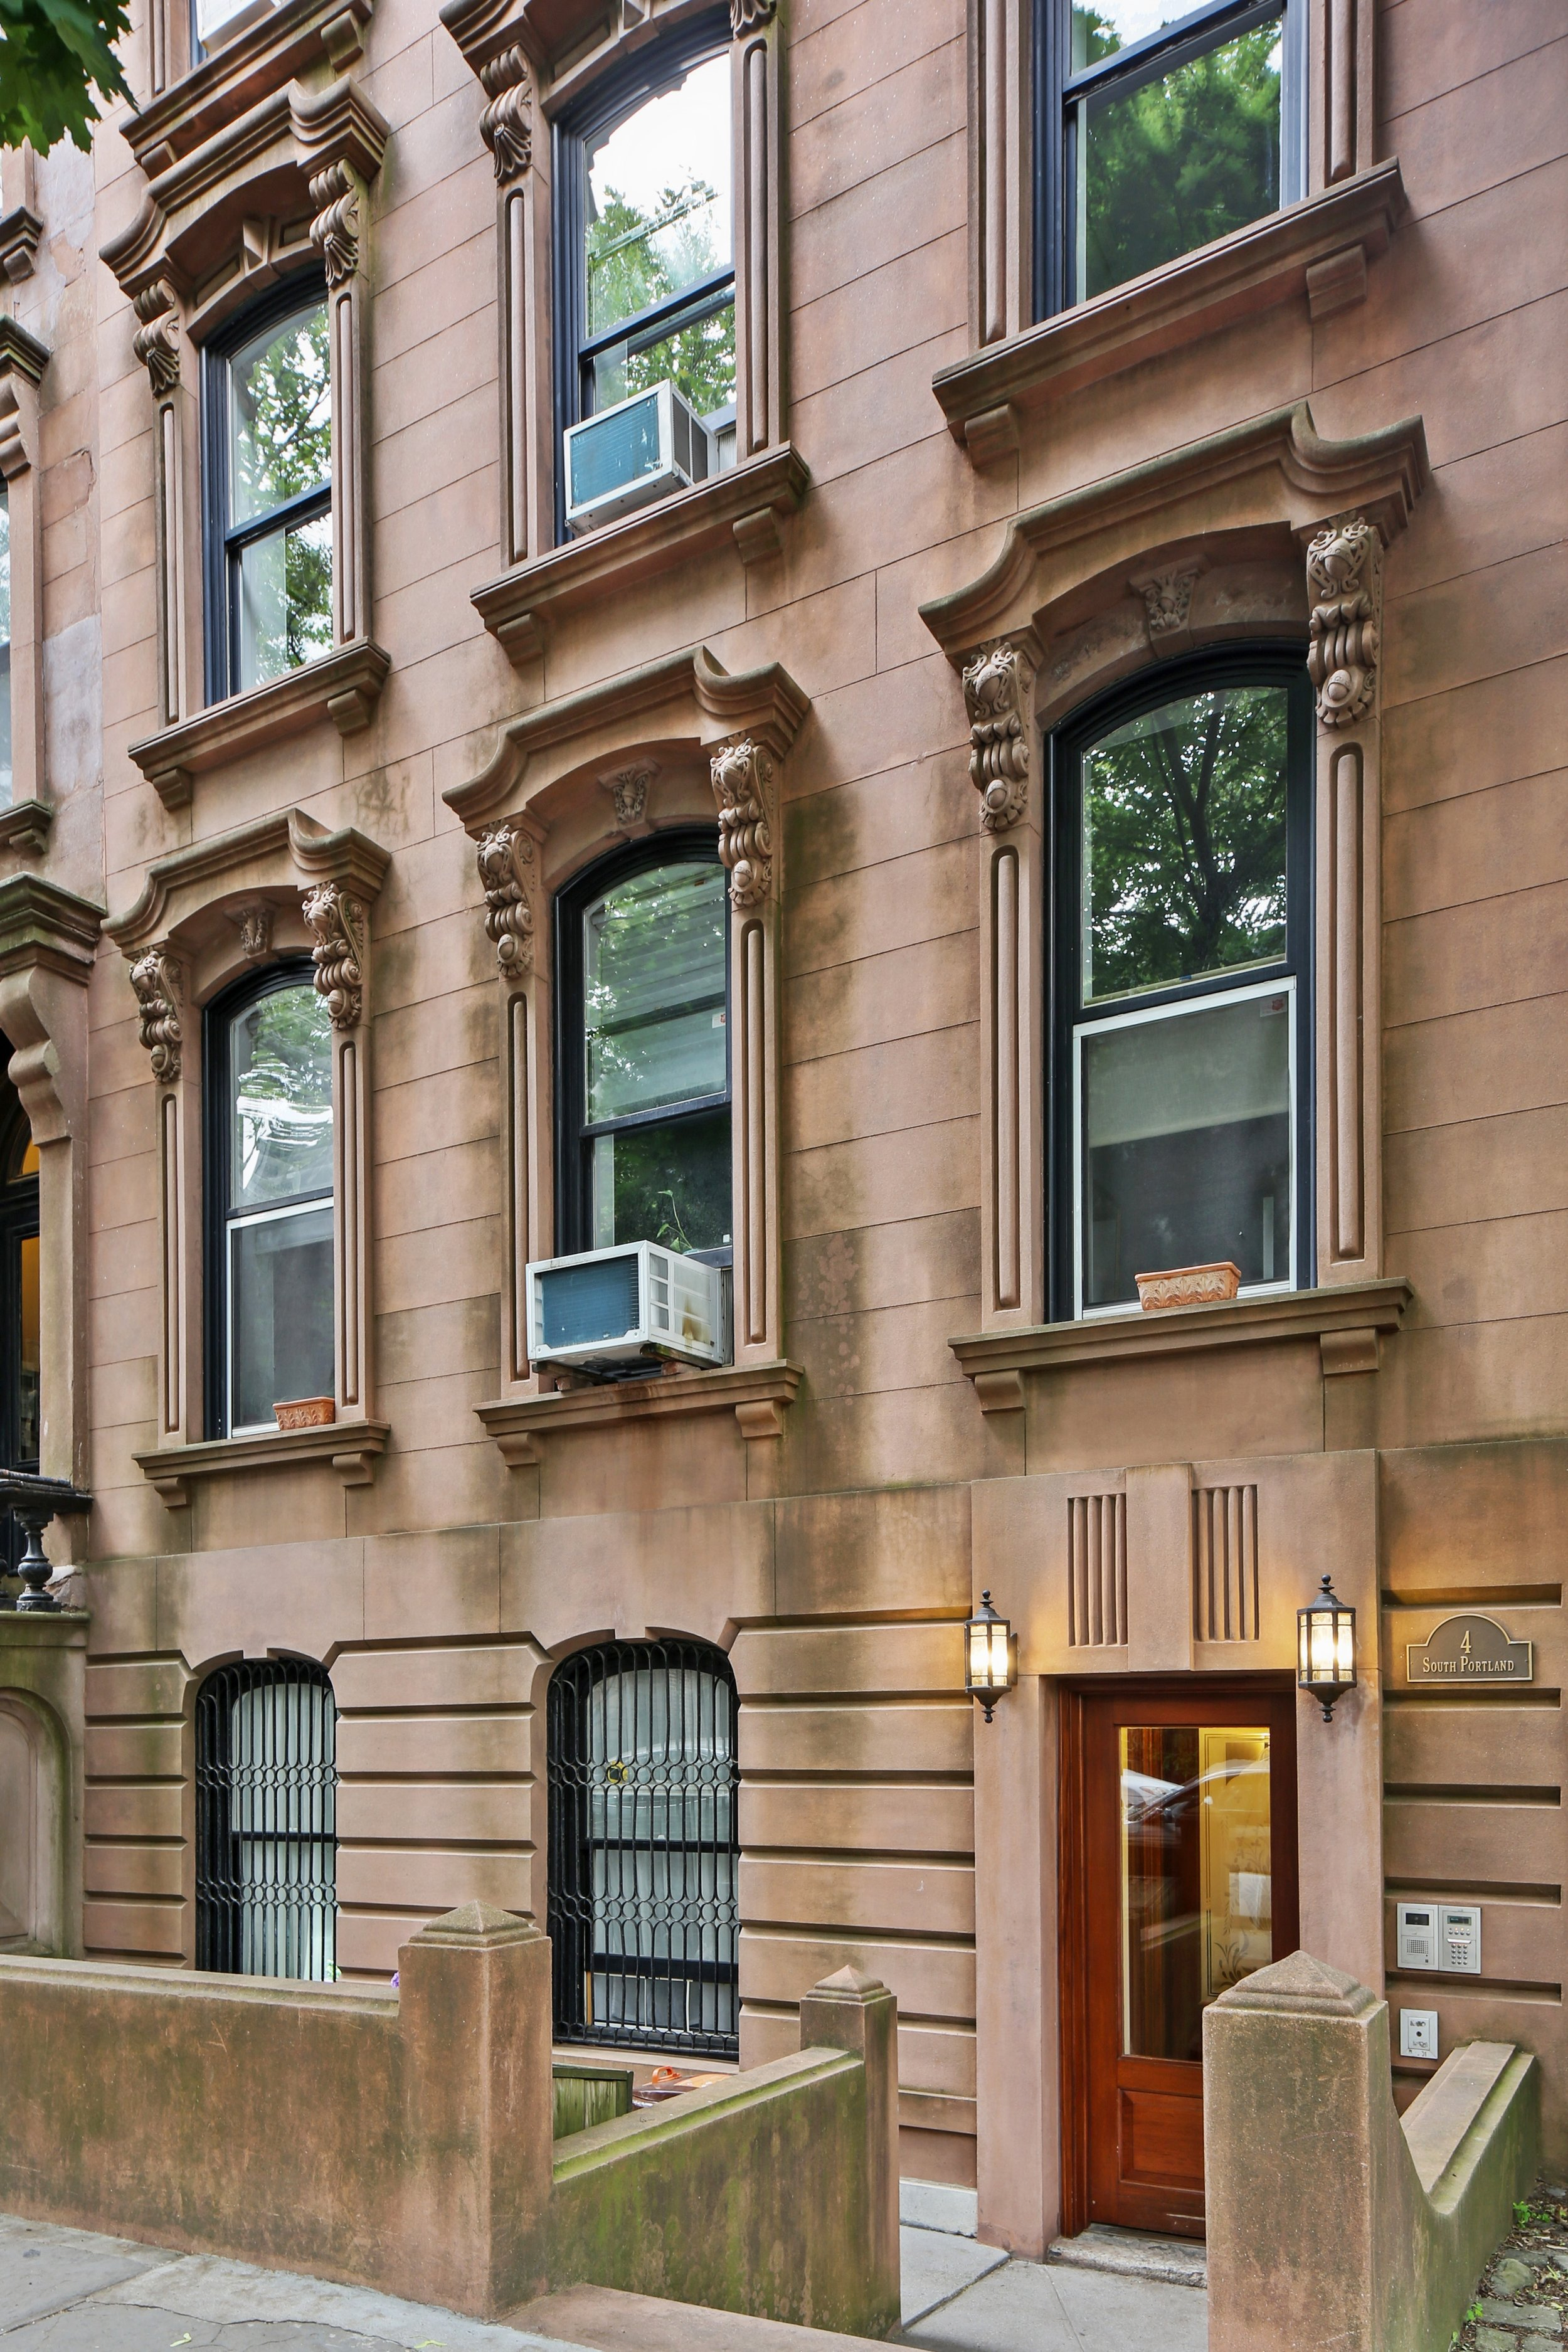 9_4SouthPortlandAvenue_5_57_FrontView_HiRes.jpg